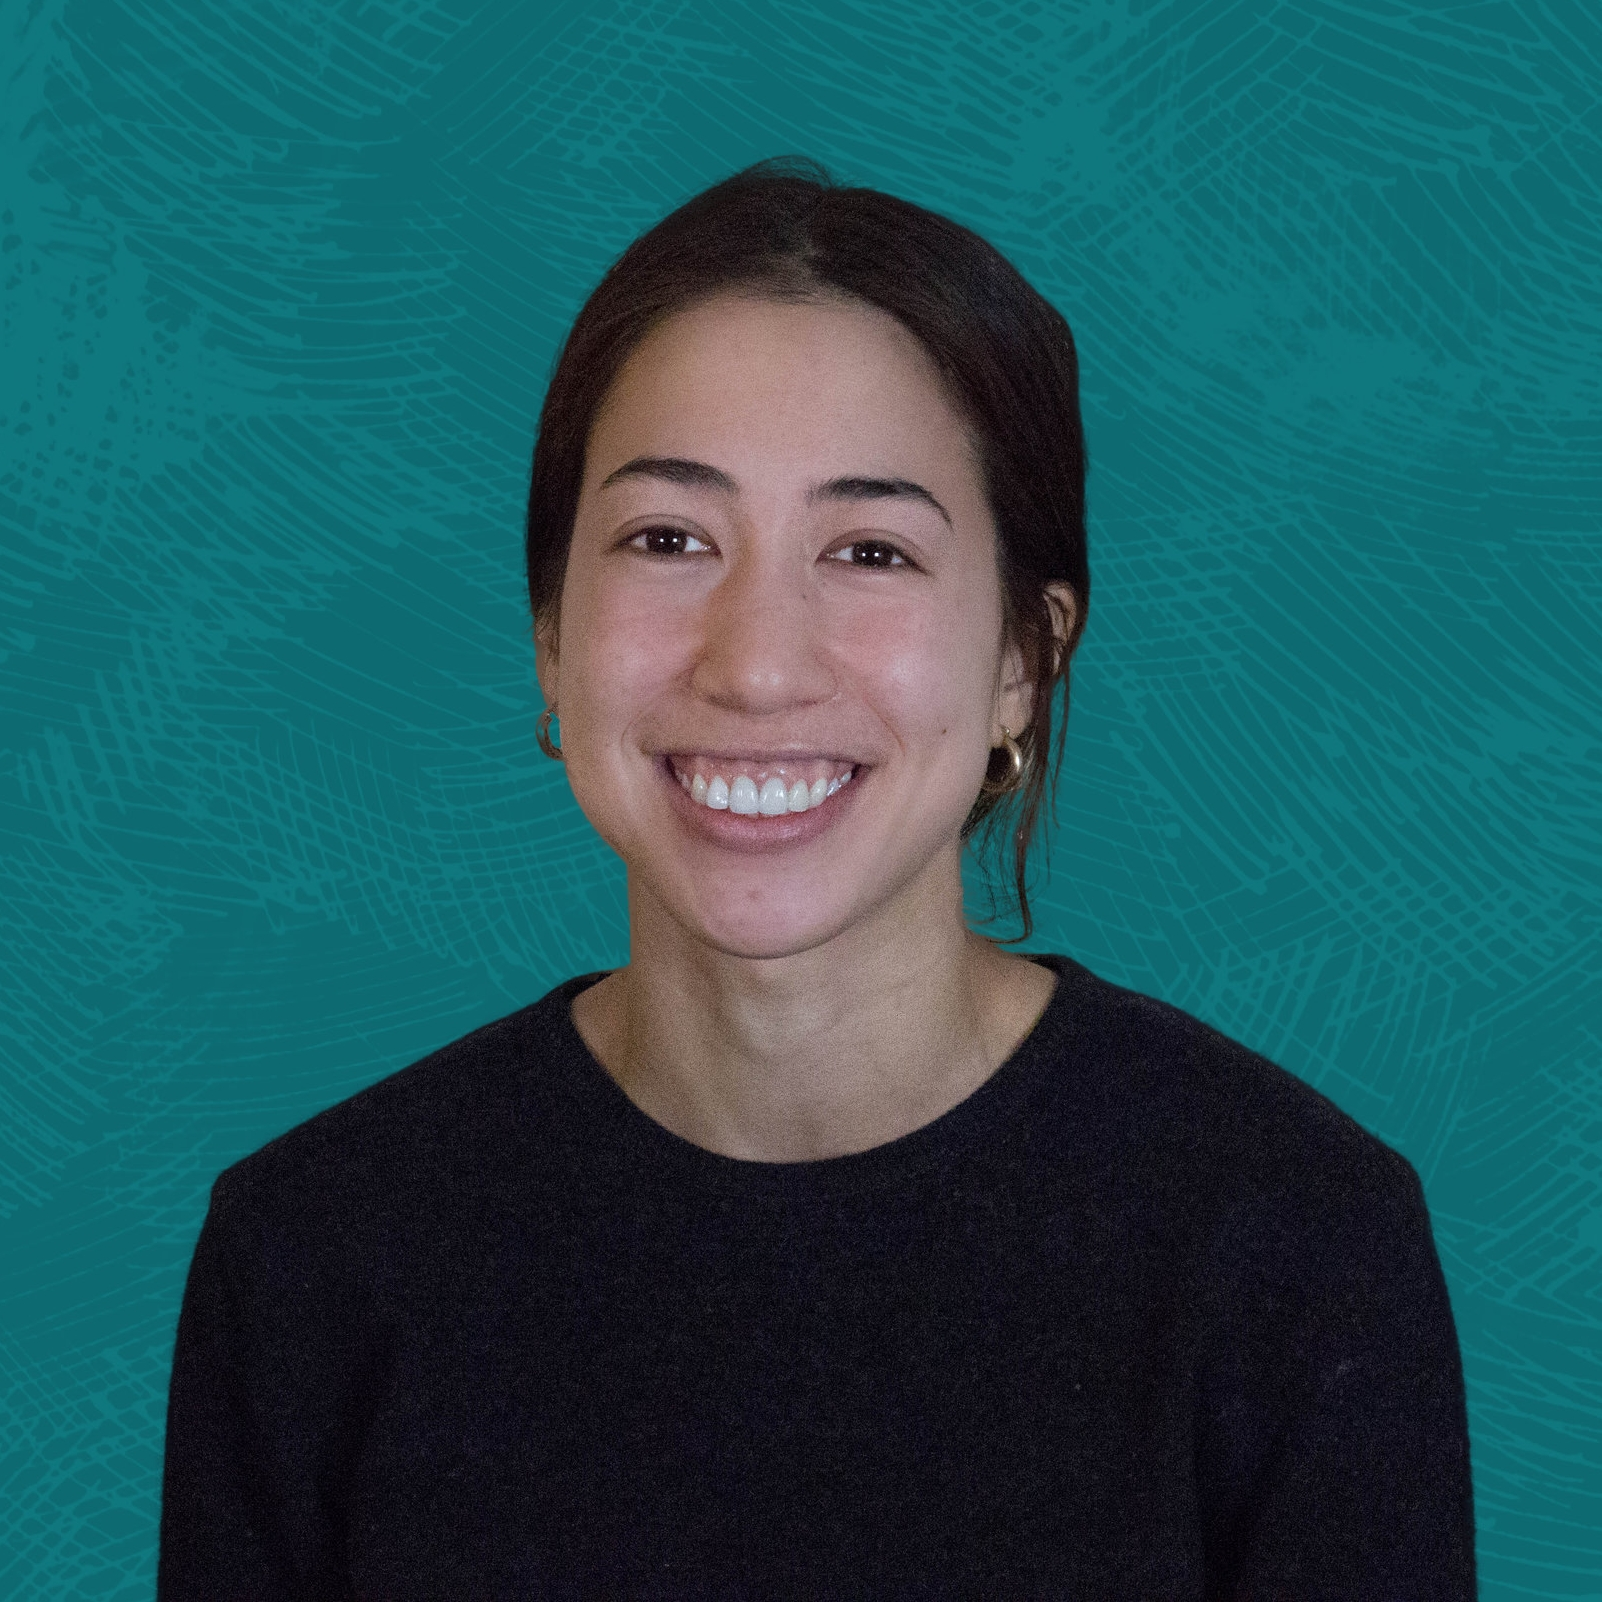 Copy of <strong>Gabrielle Shorr</strong></br>Senior Client Operations Associate